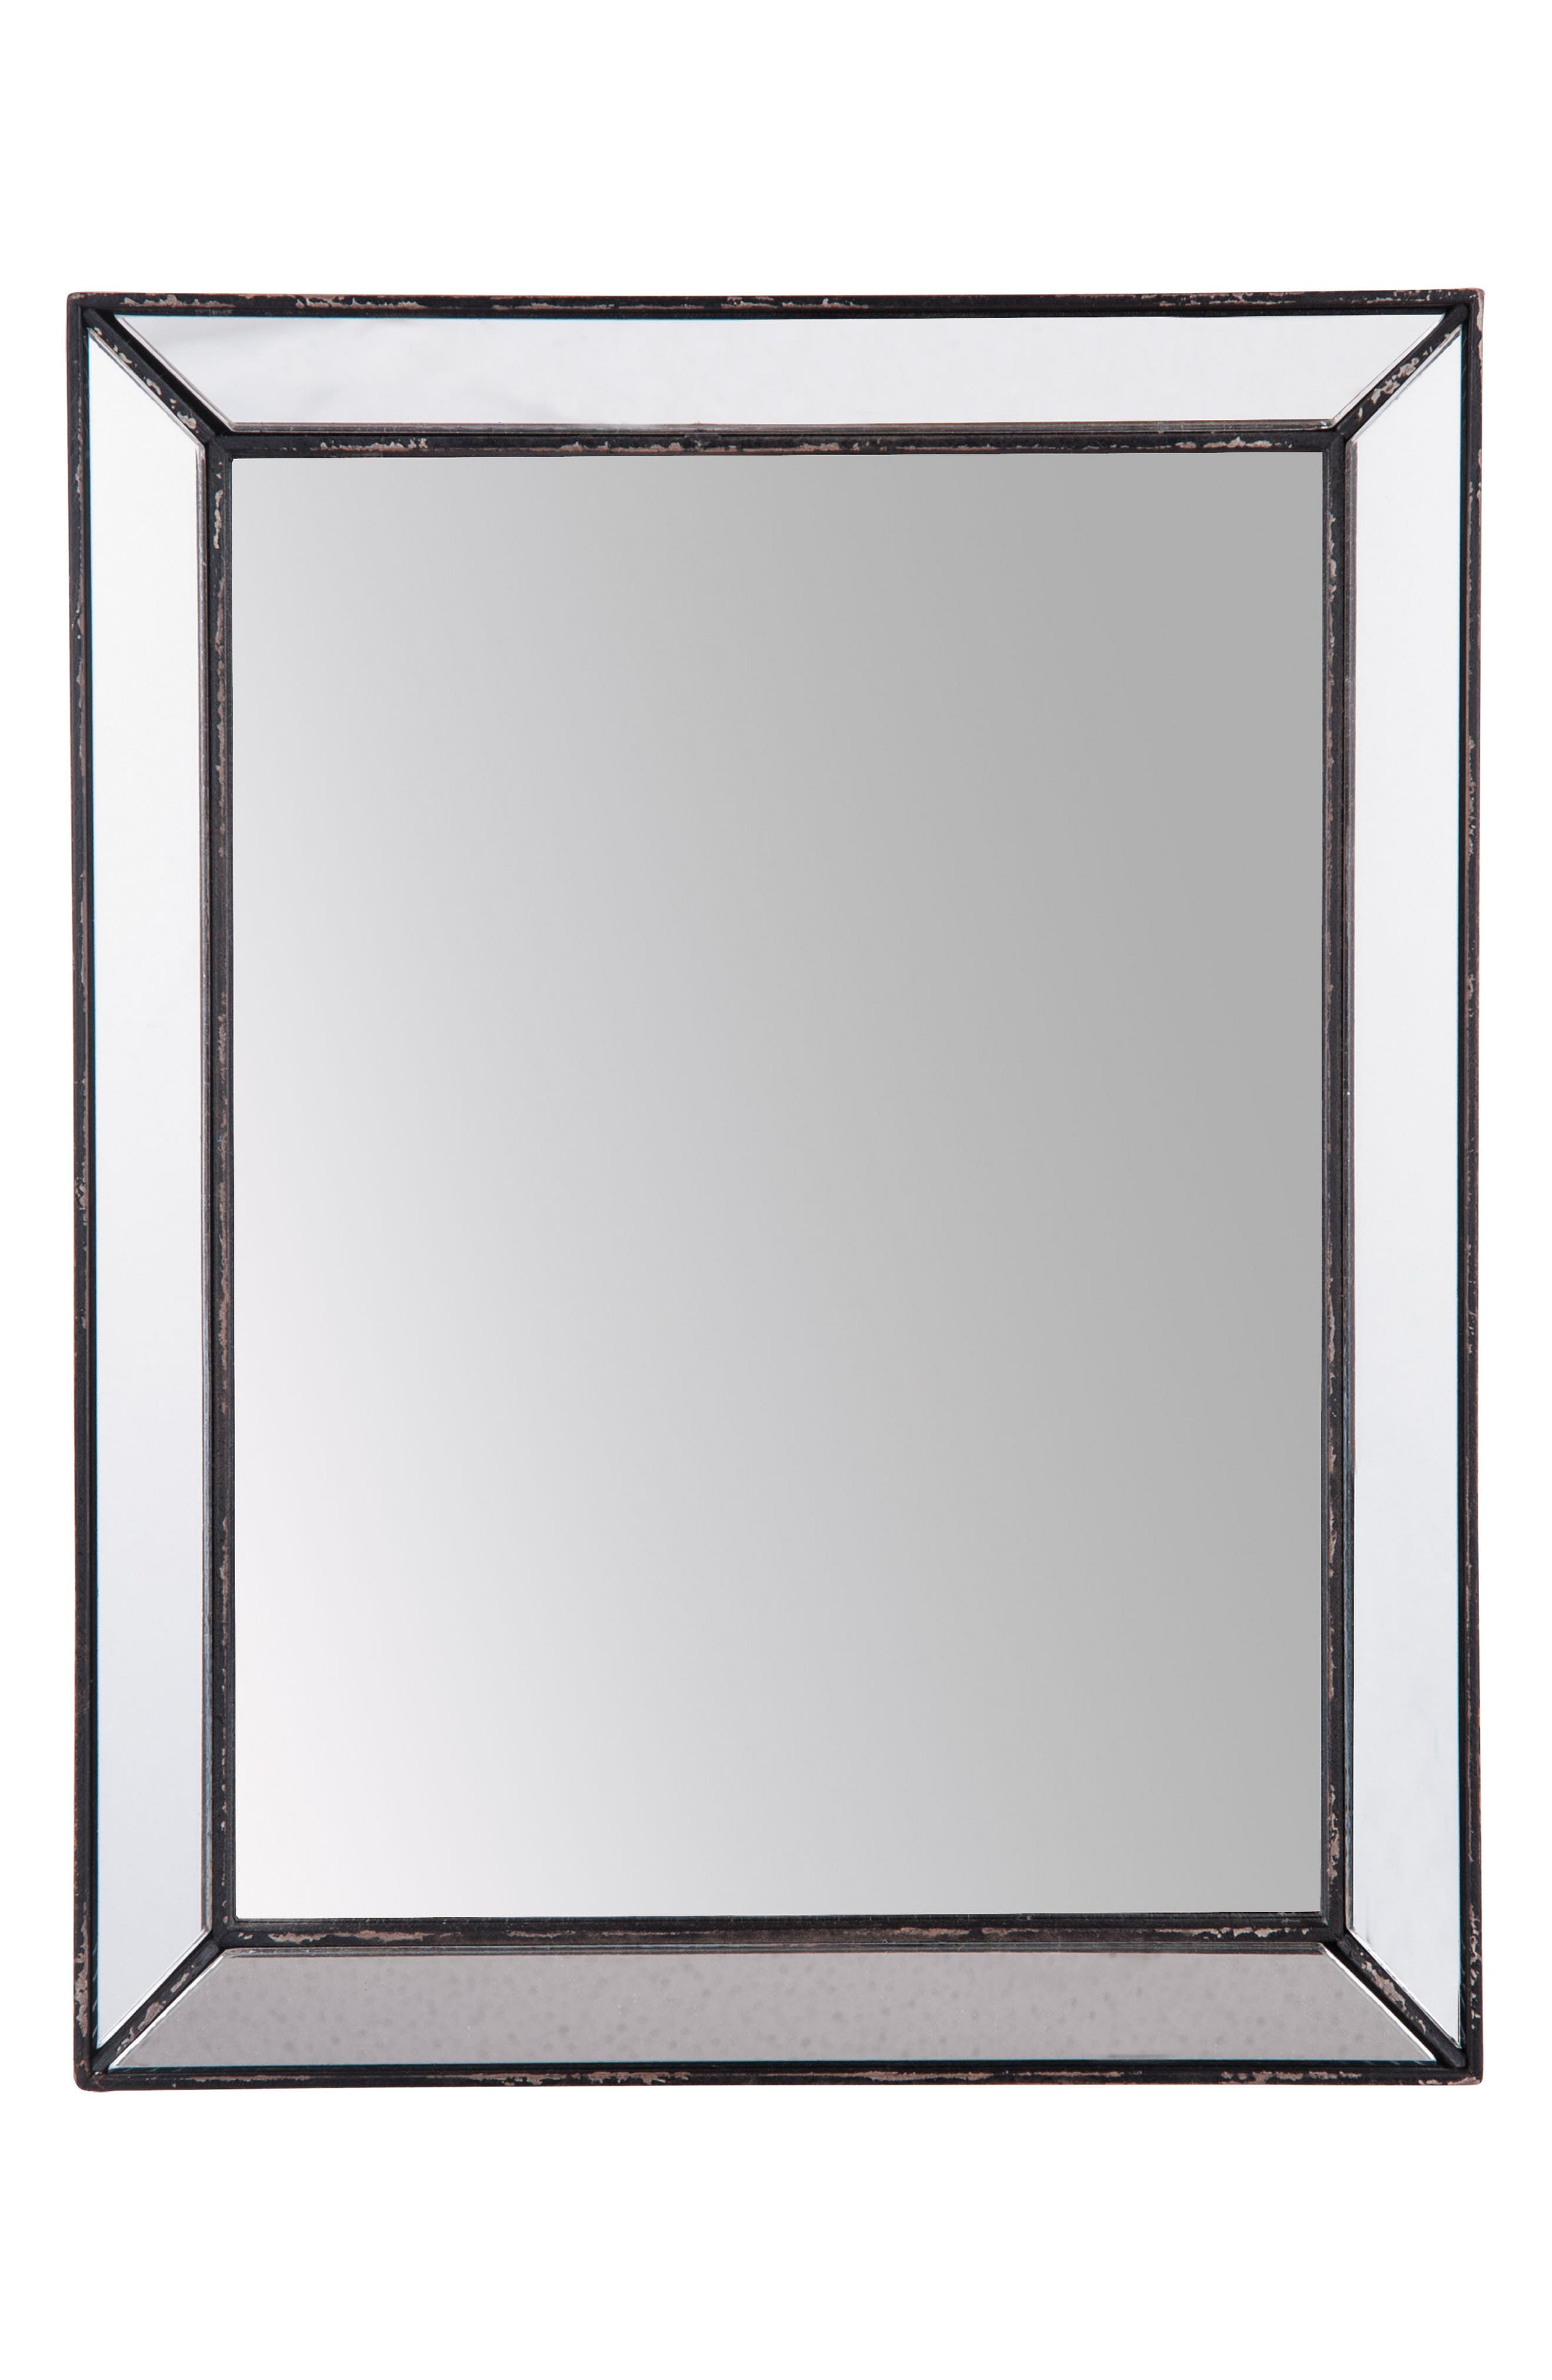 Main Image - Foreside Rectangle Mirror